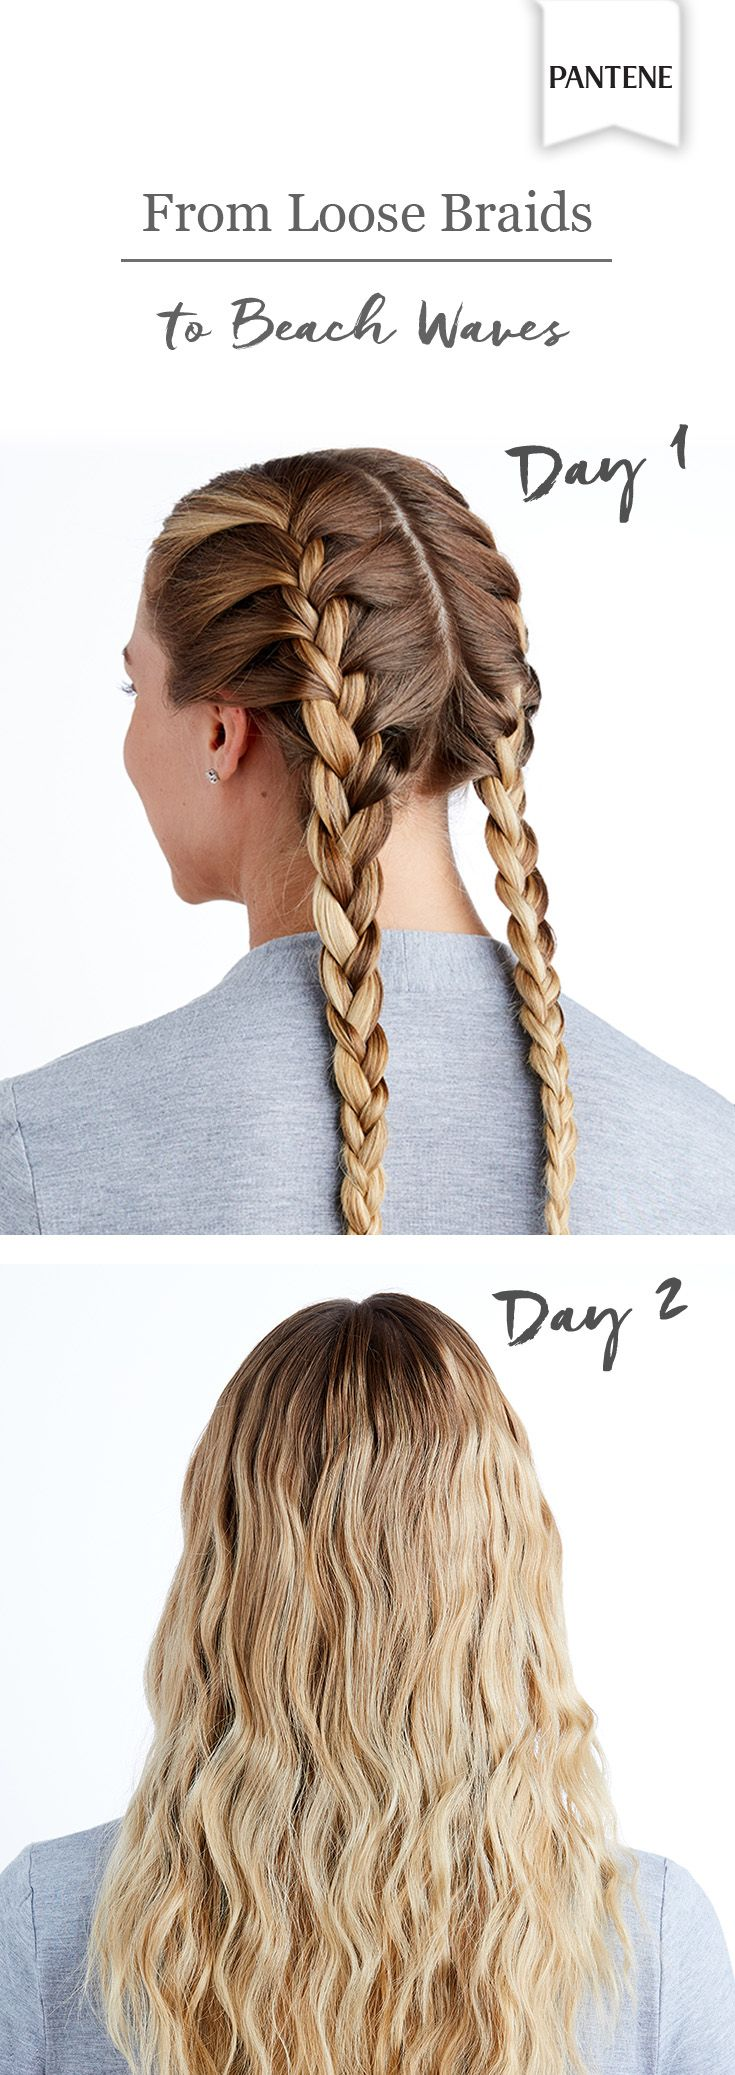 For an easy second-day hairstyle, just wear your hair in loose braids on day one. Sleep in them overnight, then undo them the next day for chic, no-heat beach waves.